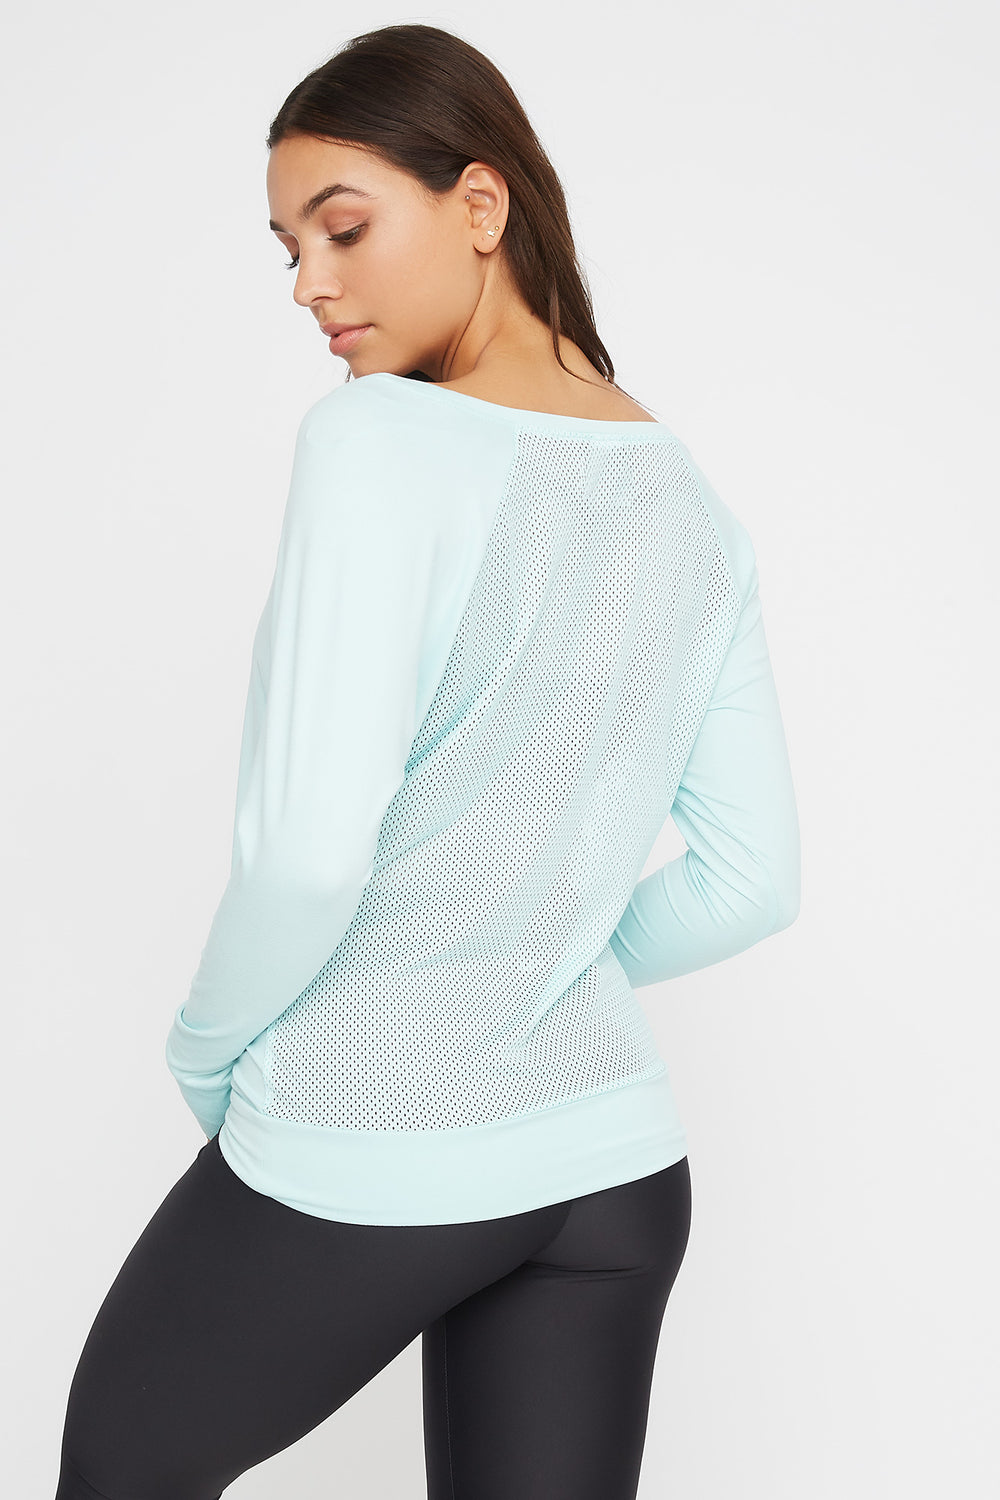 Soft Mesh Back Crewneck Active Long Sleeve Aqua